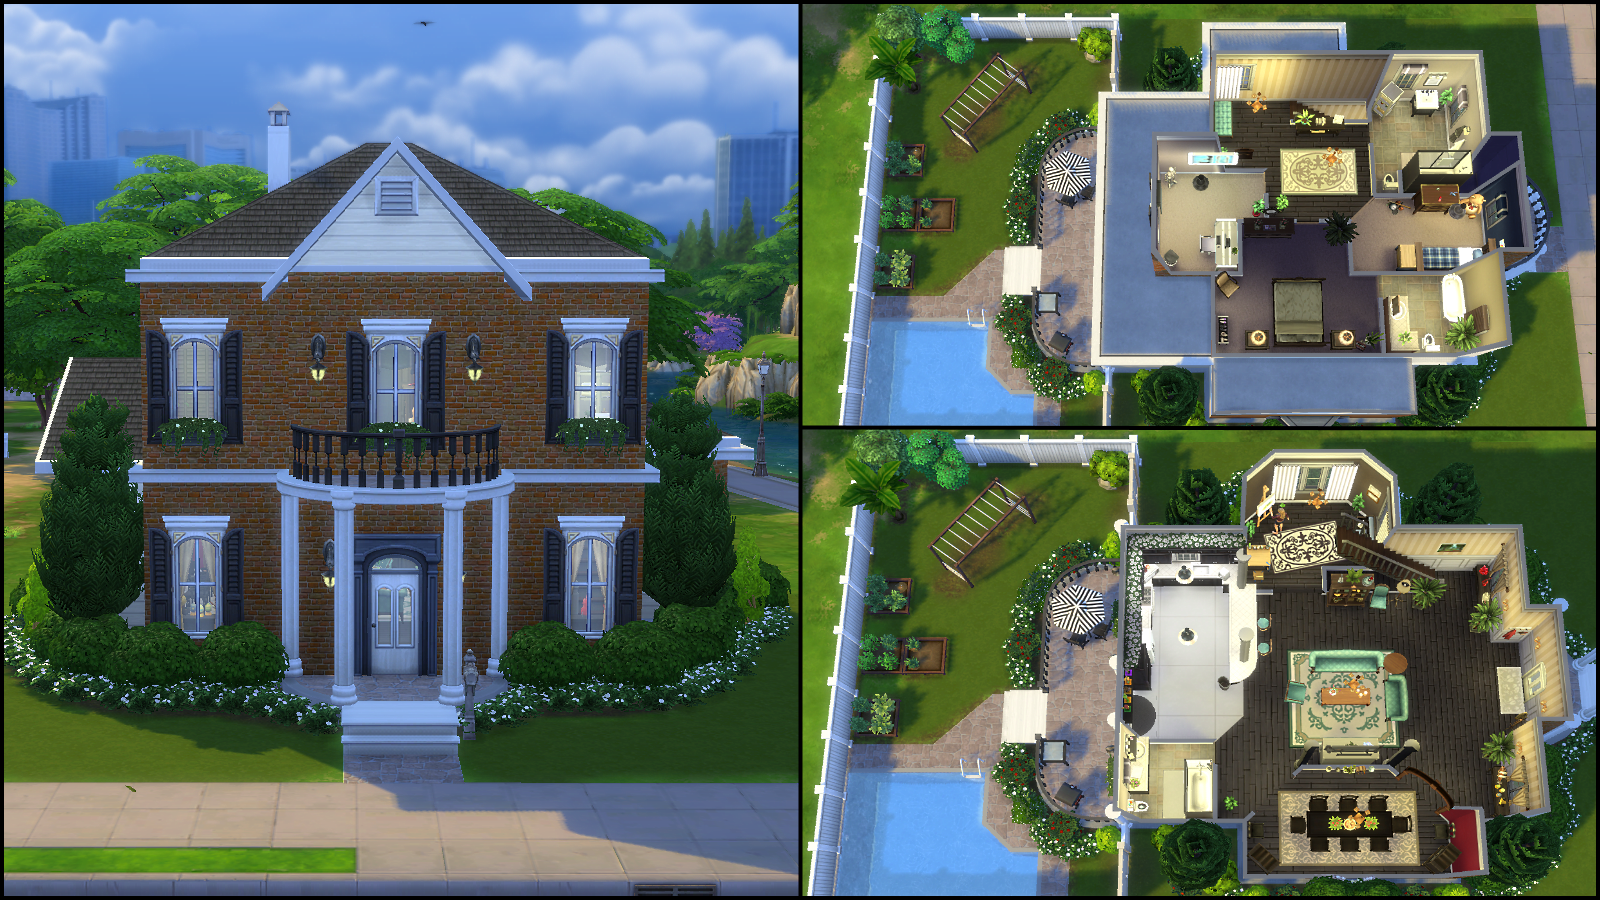 sims 4 floor plans. With an open floor plan  this two bedroom three bath home is warm and inviting The includes a front parlor kitchen office formal dining Sims 4 Gallery Spotlight SimsVIP